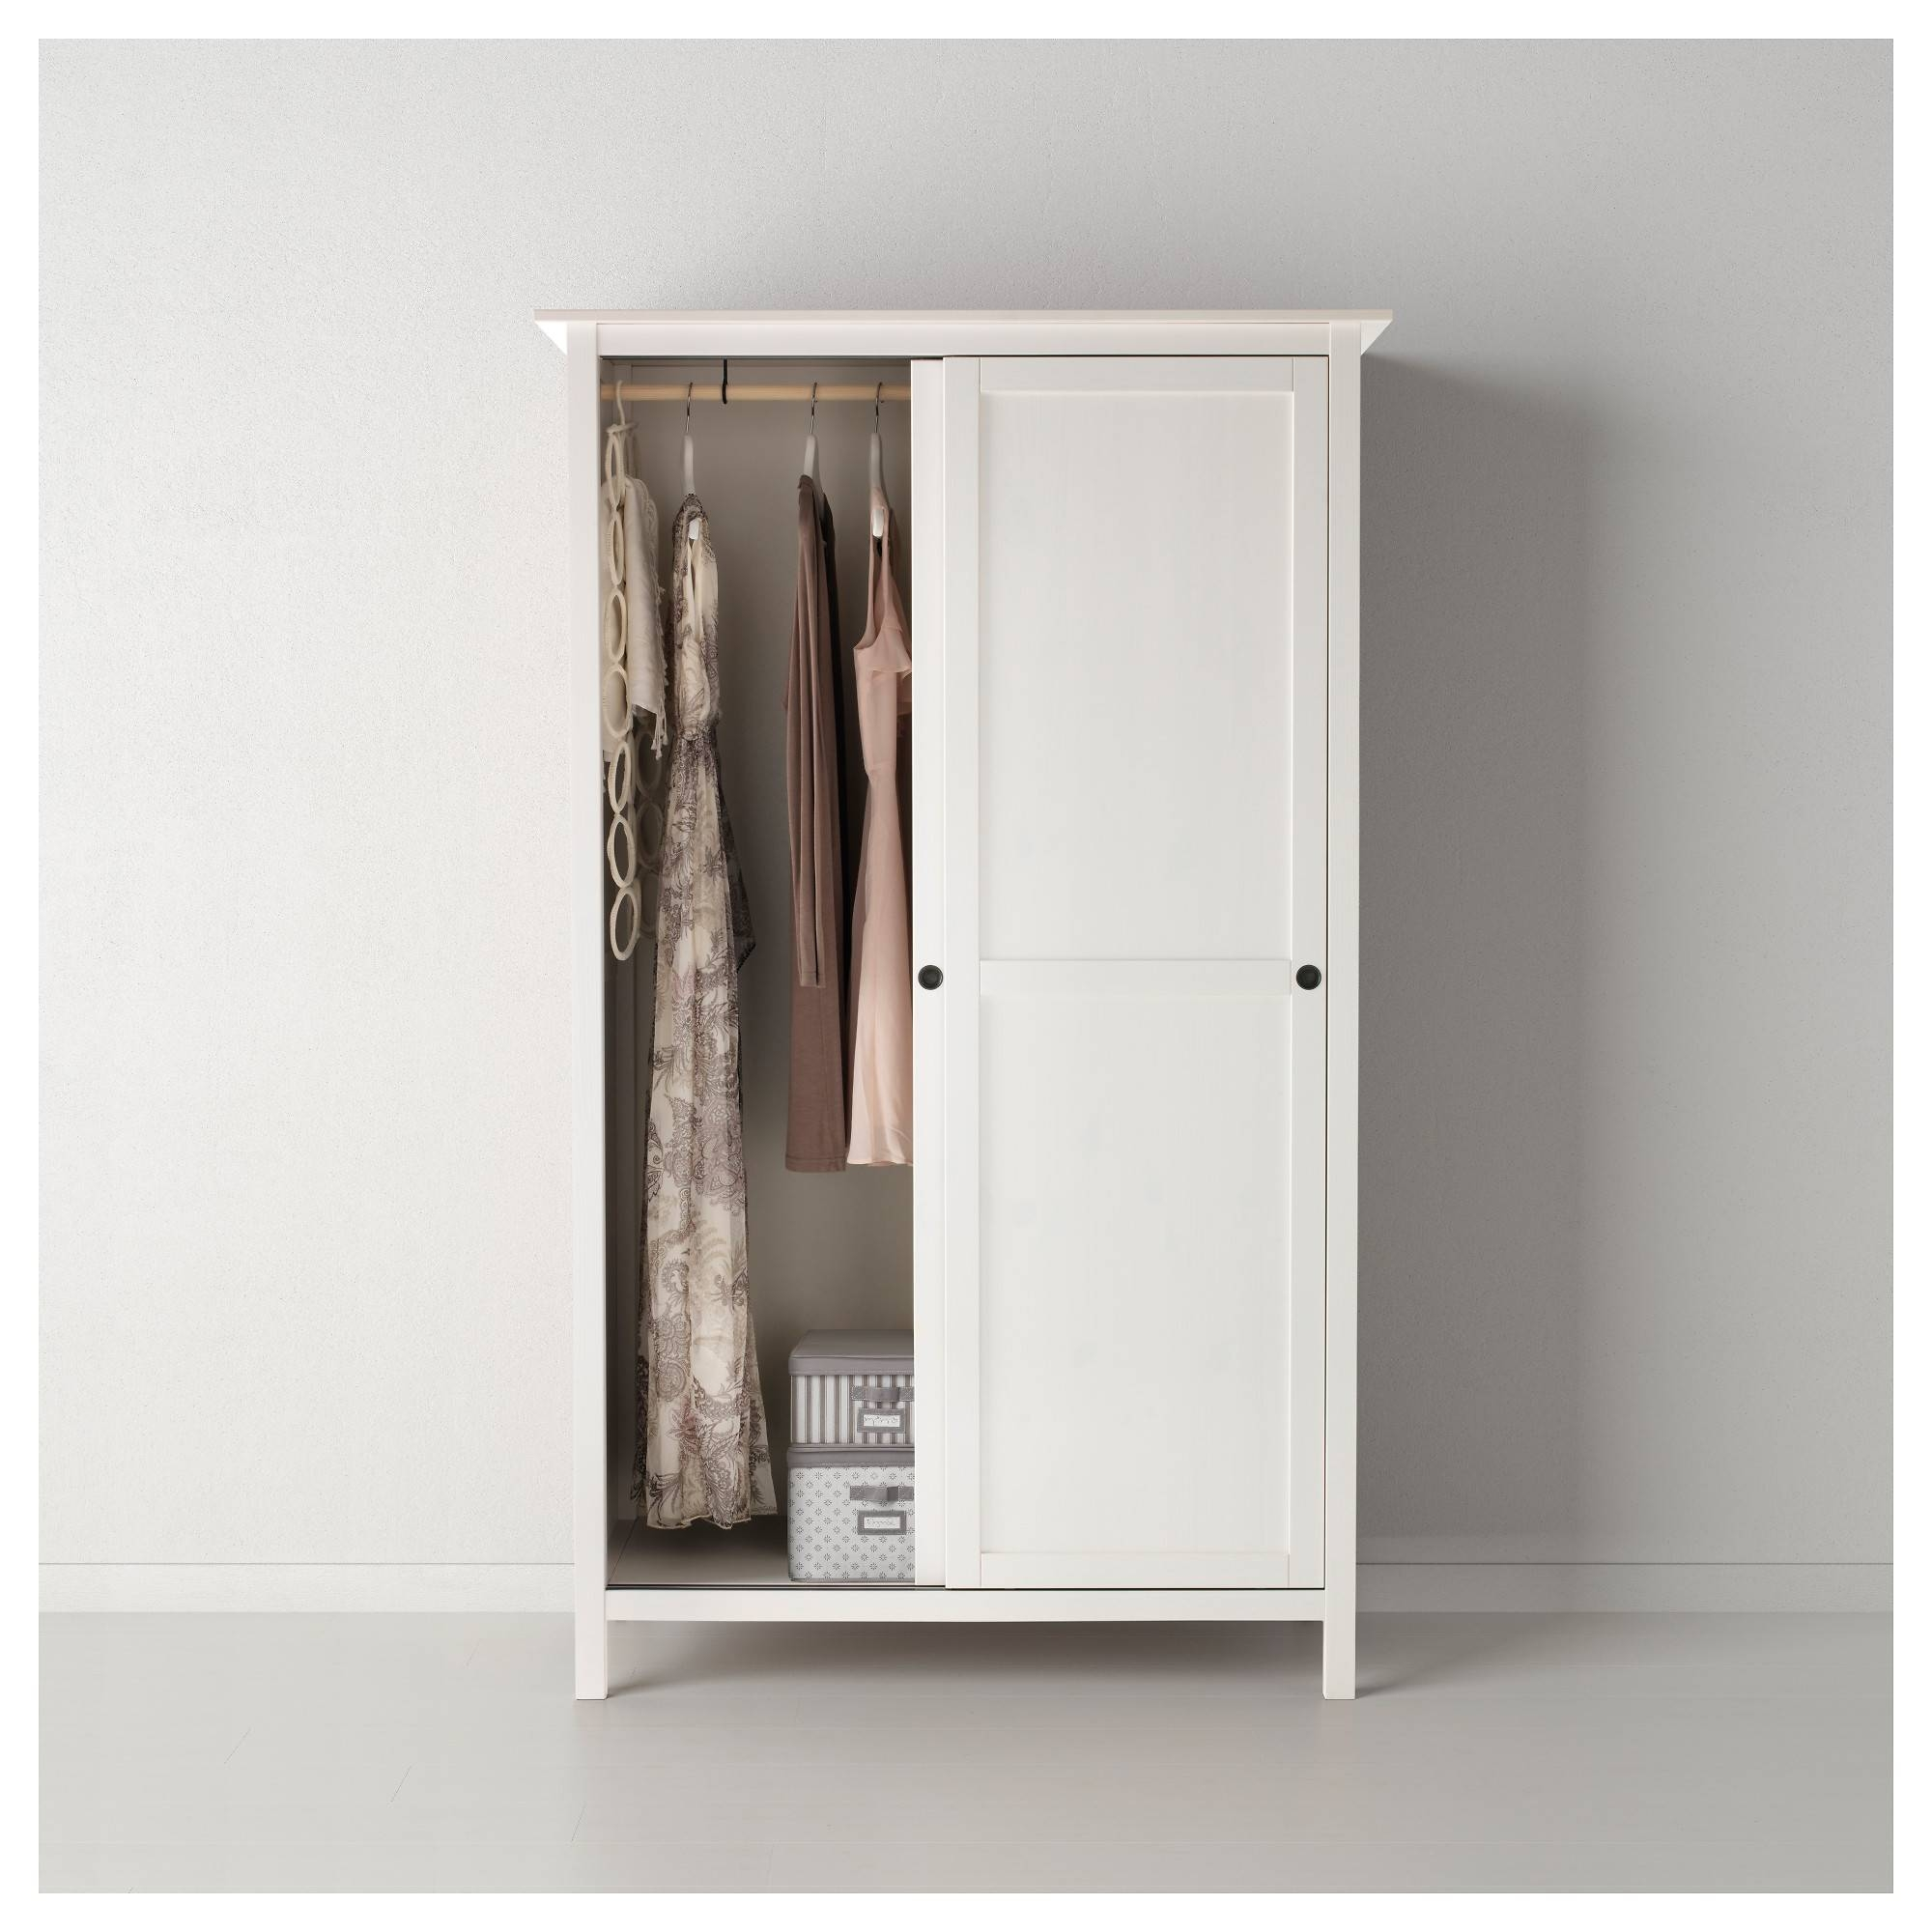 Hemnes Wardrobe With 2 Sliding Doors White Stain 120X197 Cm - Ikea pertaining to Wardrobes With 2 Sliding Doors (Image 6 of 15)